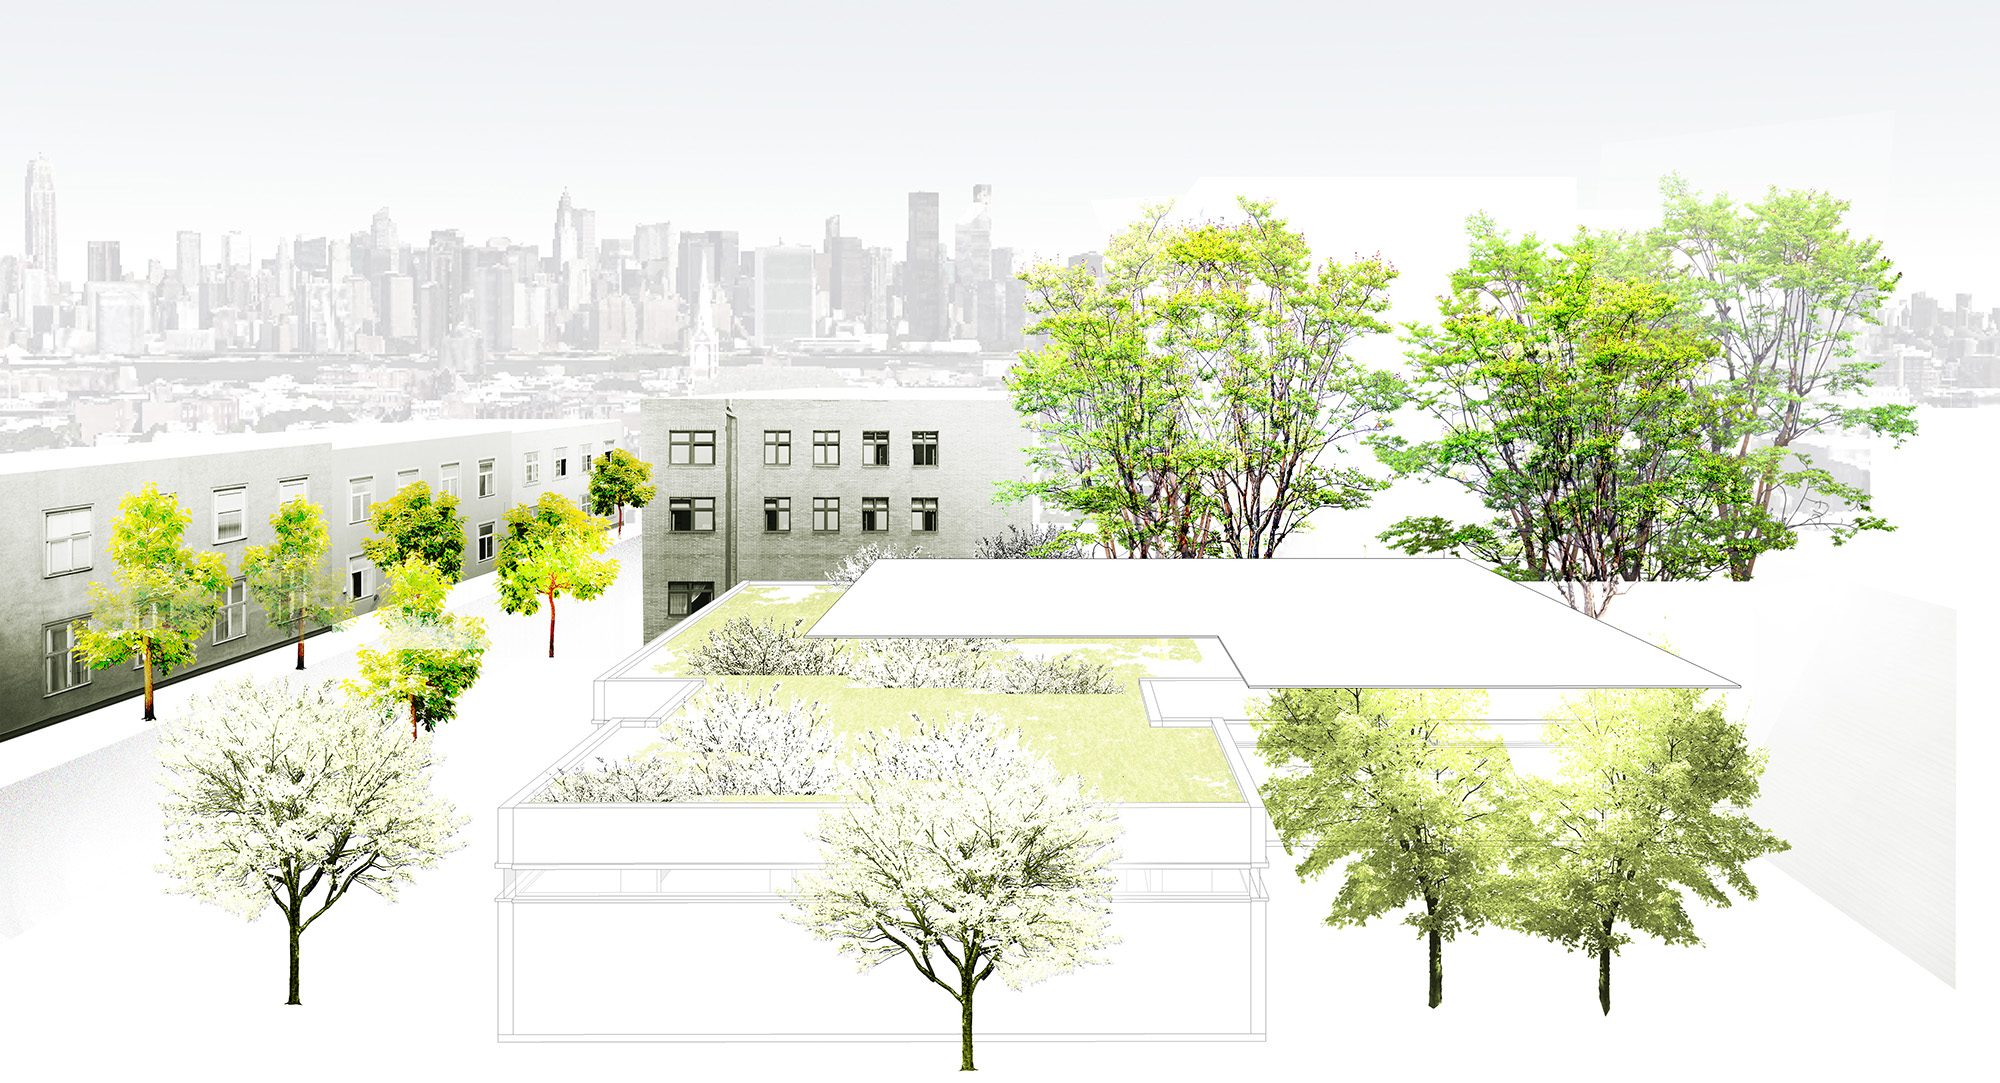 library as a park